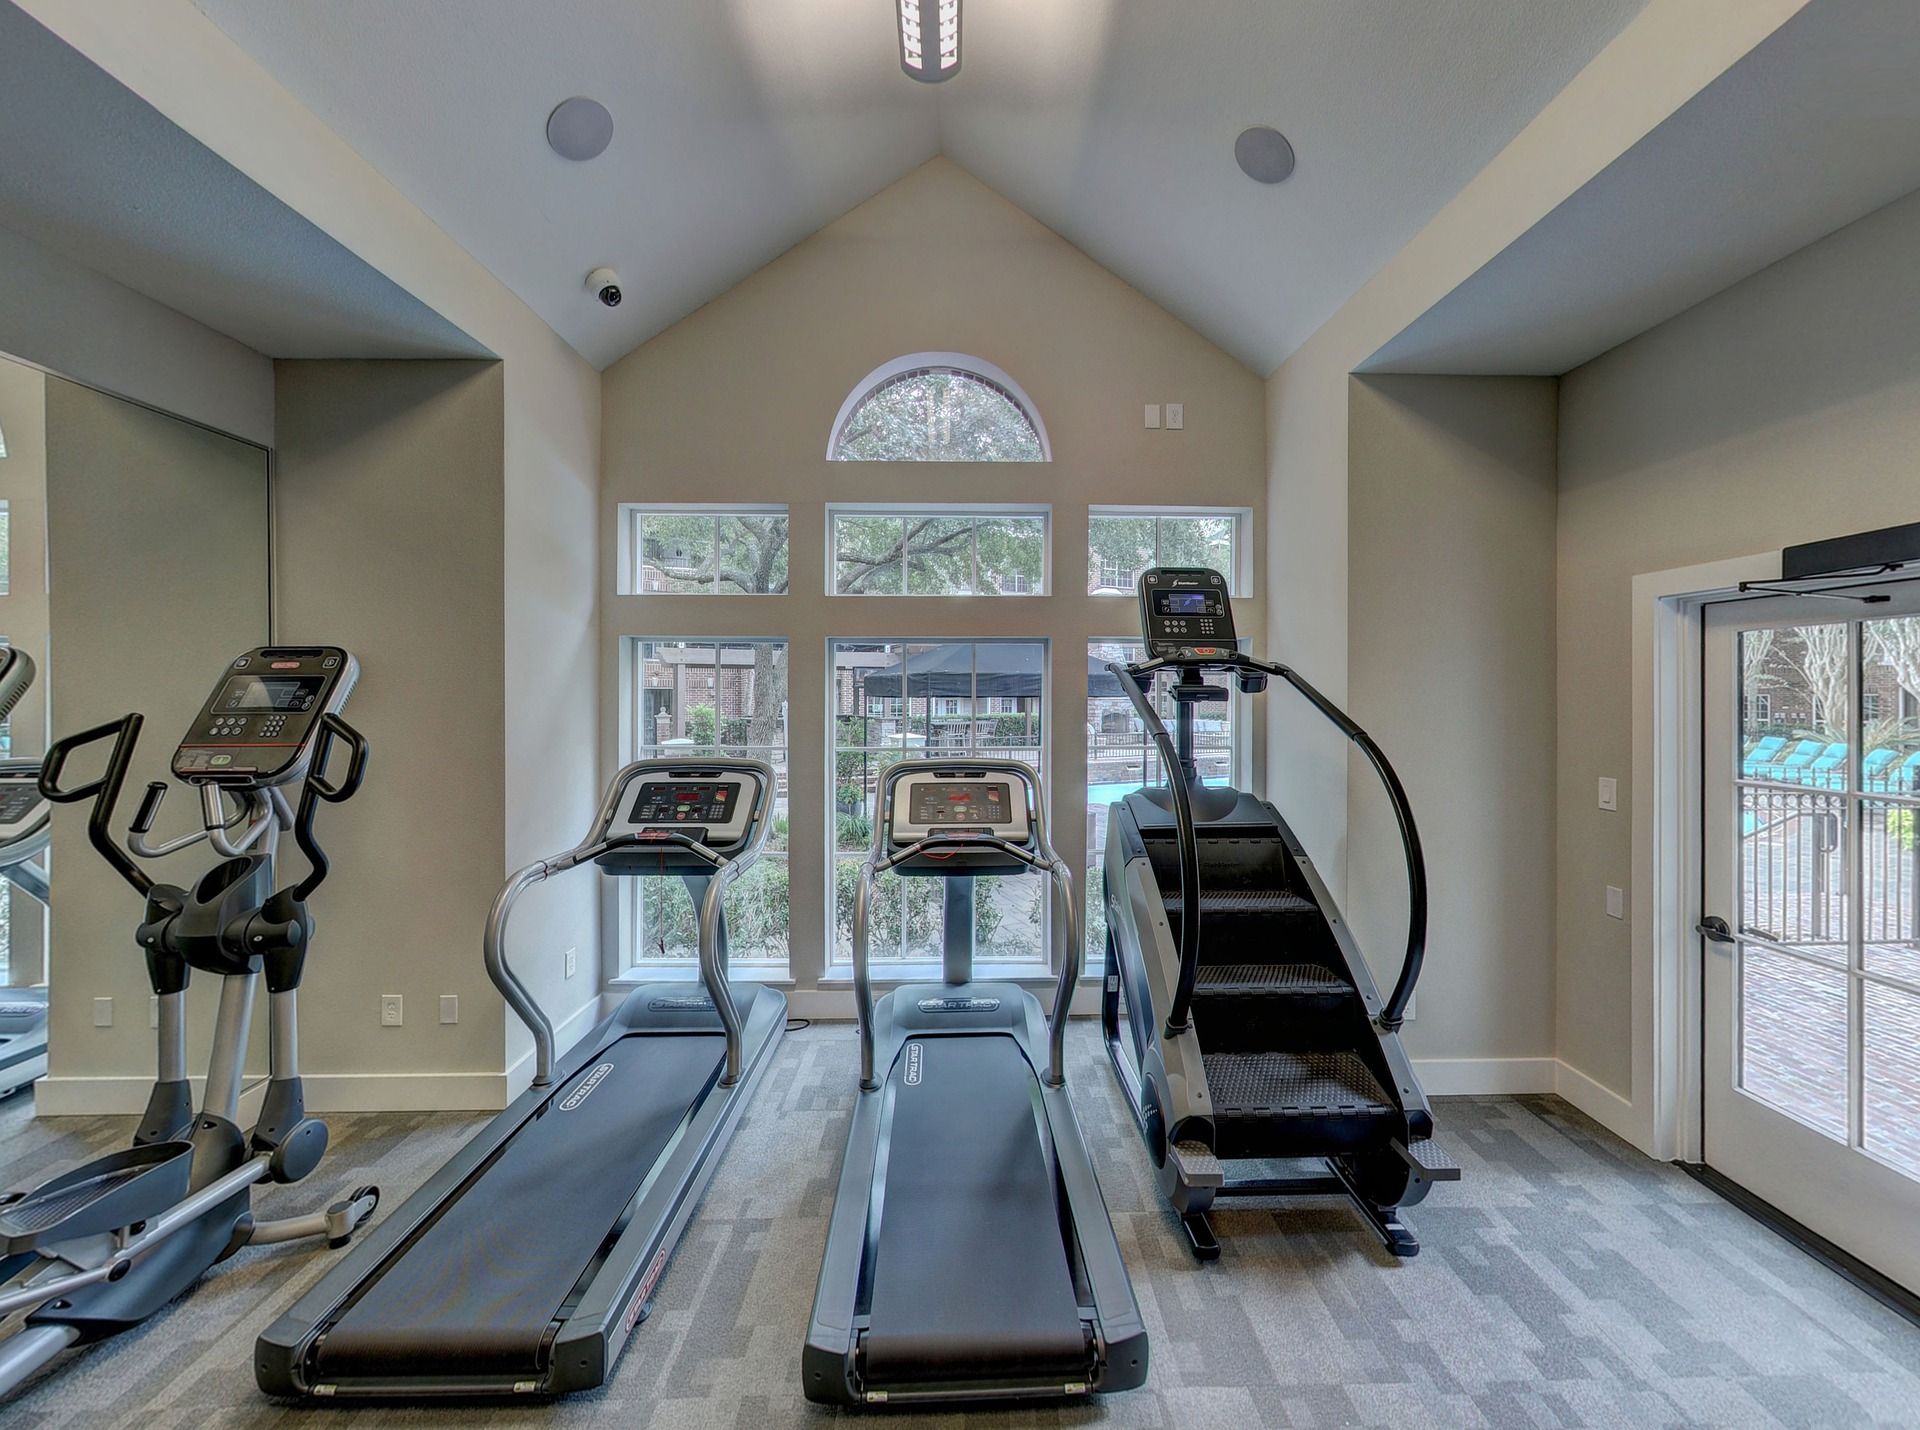 At Home Fitness: A Smart Solution